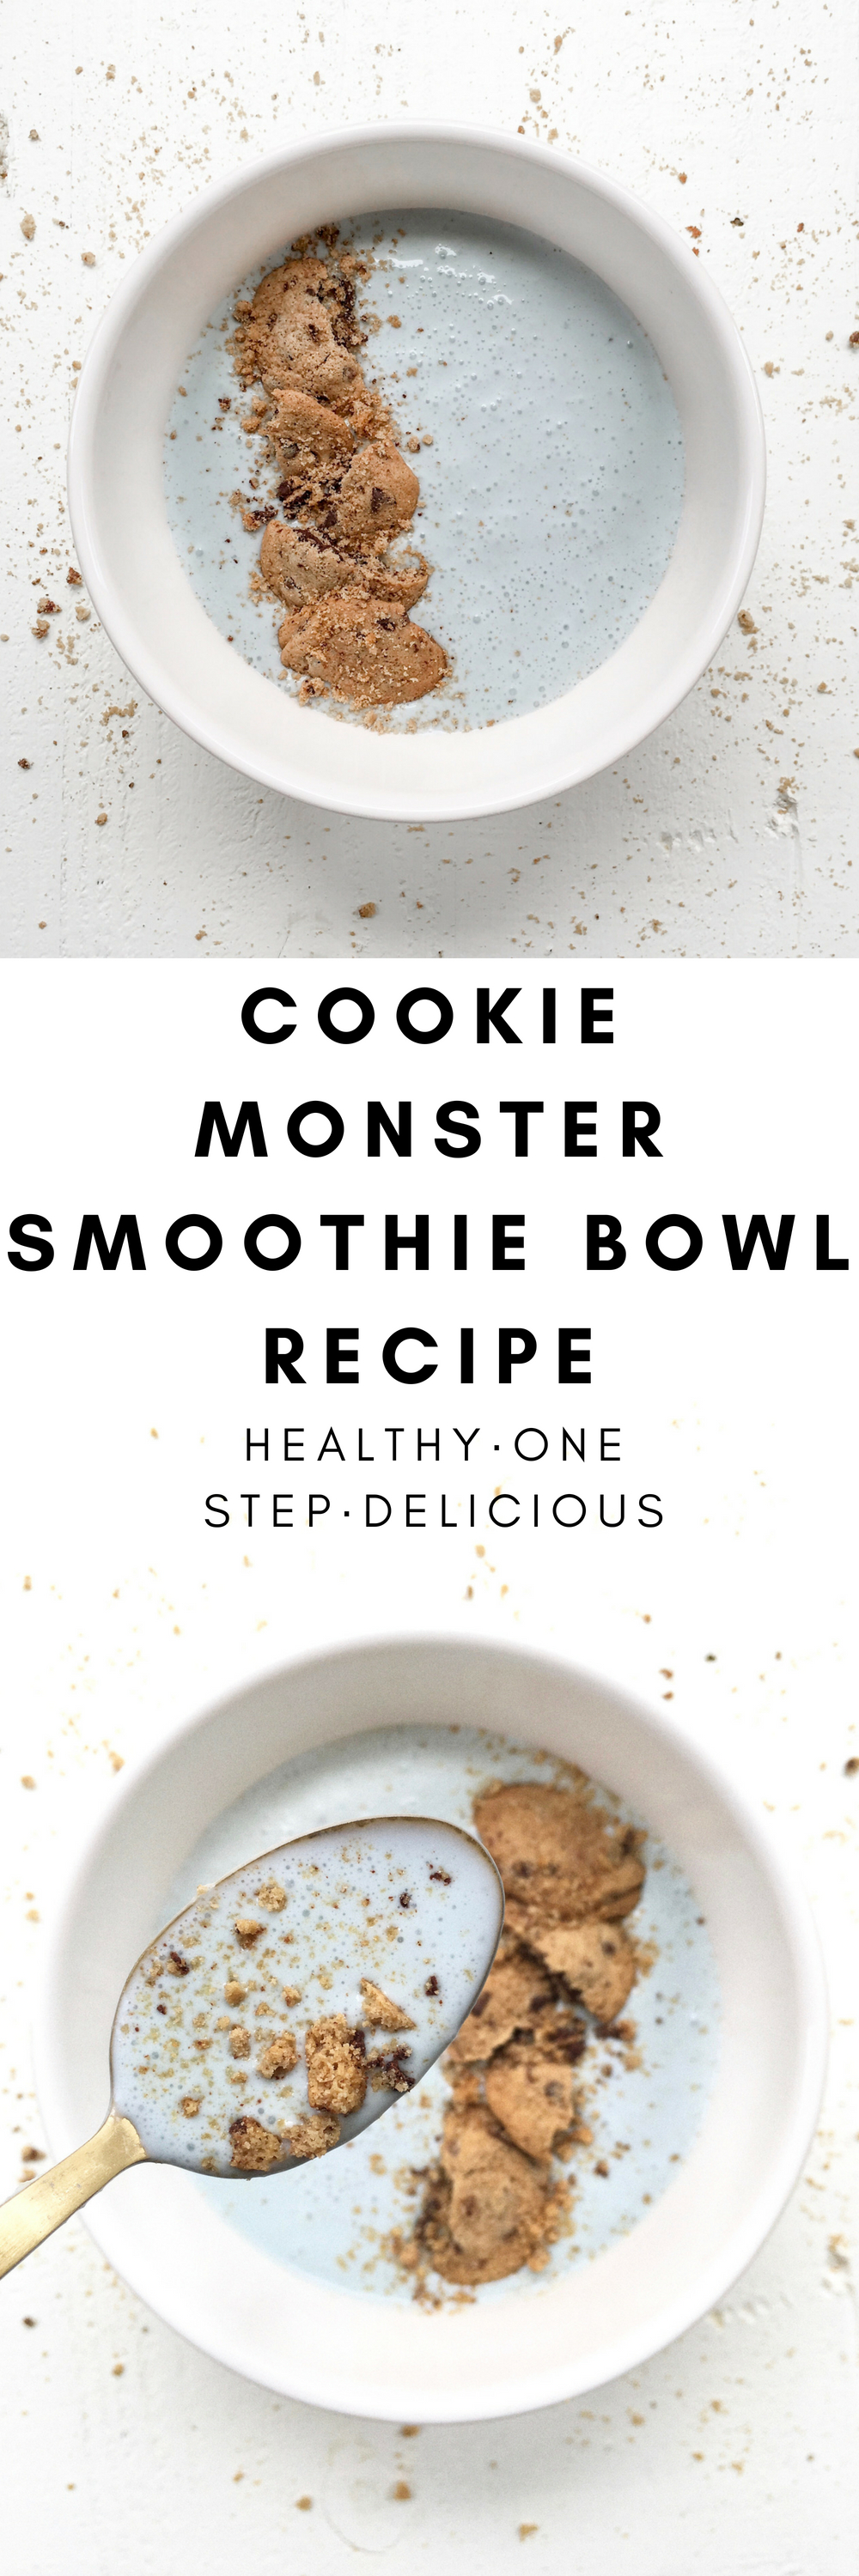 Cookie Monster Smoothie Bowl Recipe